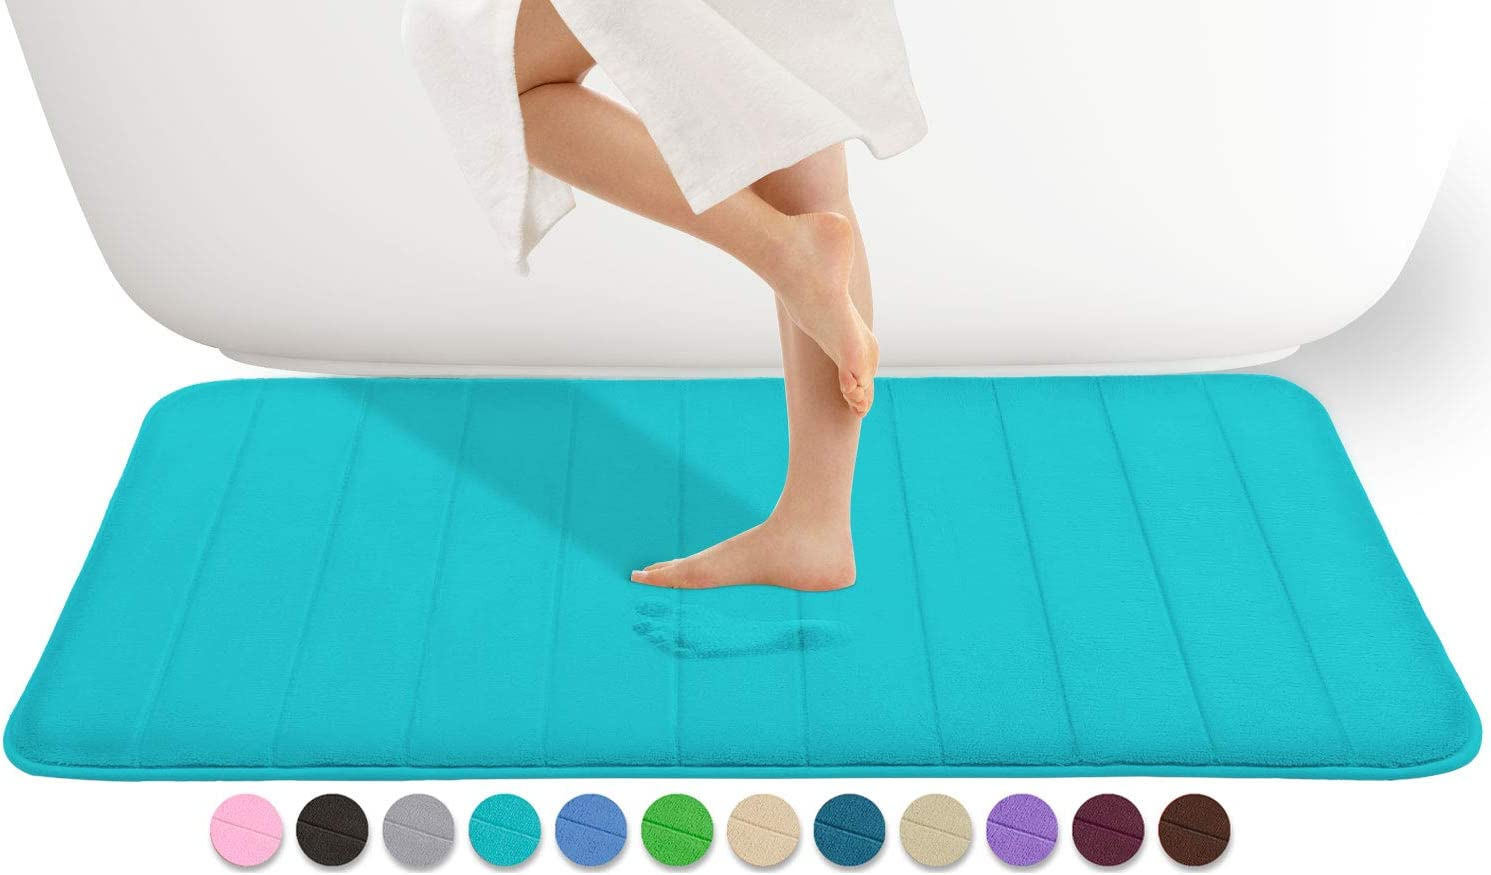 Yimobra Memory Foam Bath Mat Large Size 44.1 x 24 Inches, Comfortable, Soft, Super Water Absorption, Machine Wash, Non-Slip, Thick, Easier to Dry for Bathroom Floor Rug, Lake Blue